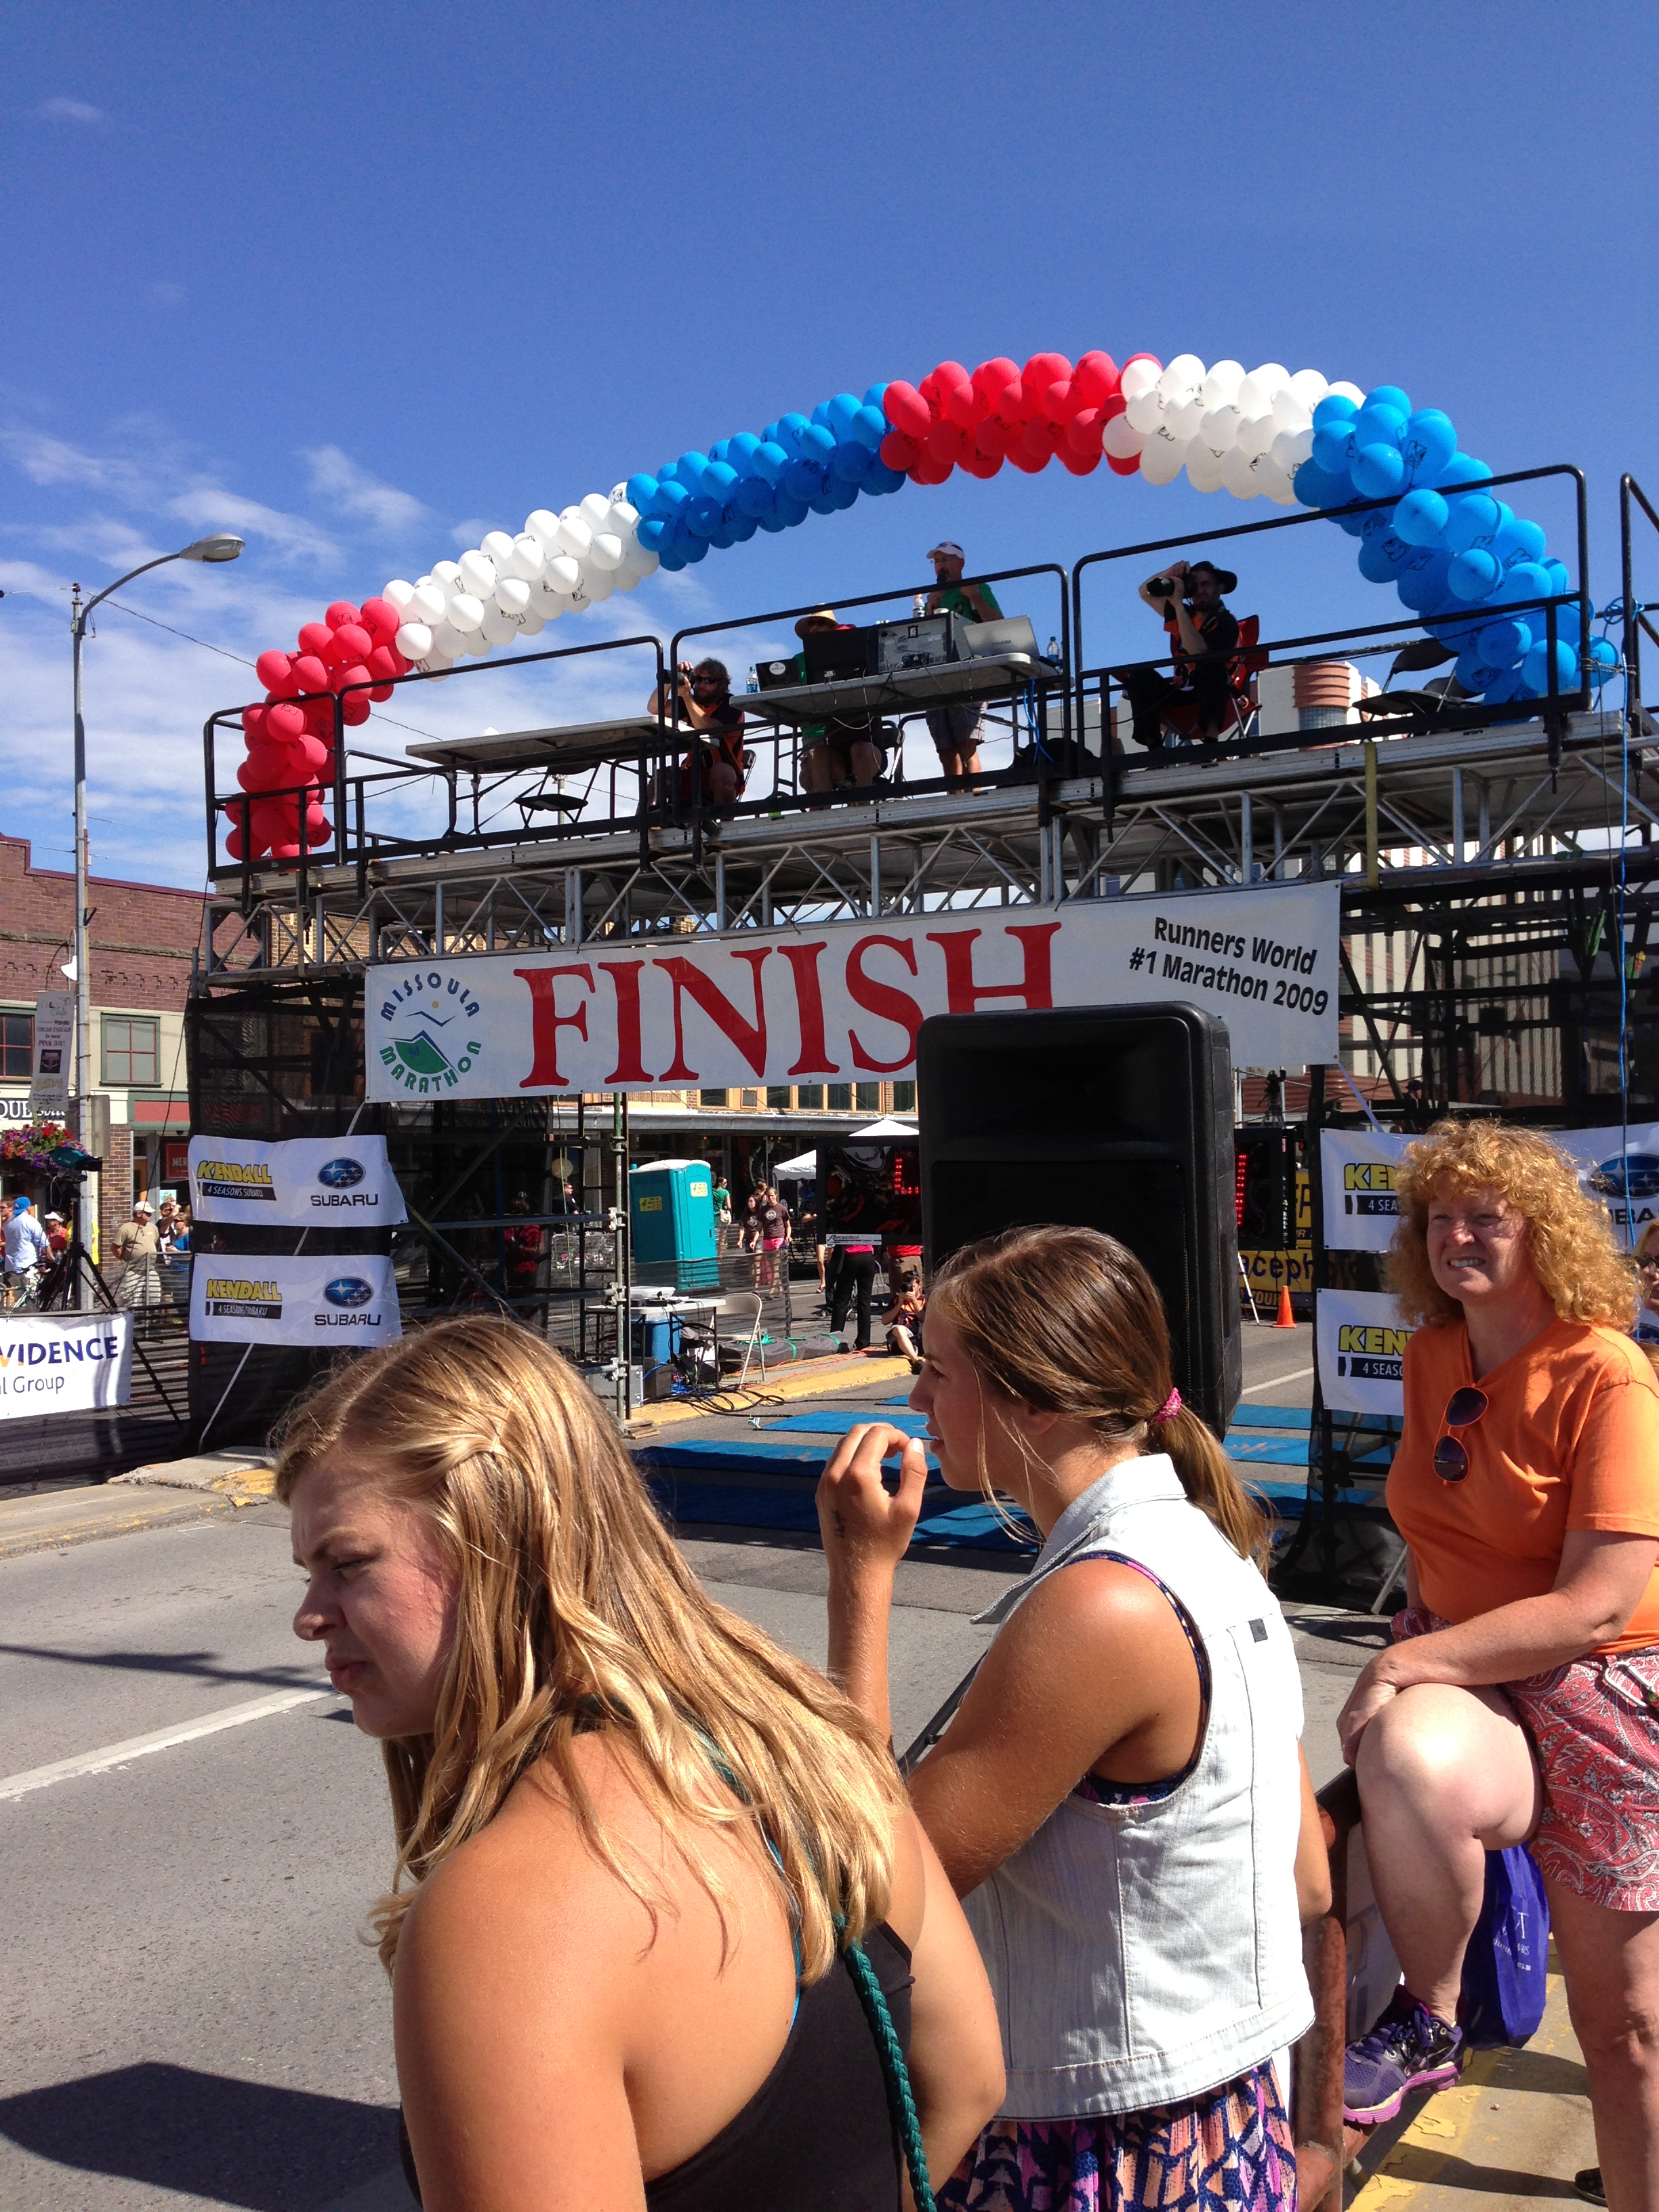 We camped out right at the finish line of the Missoula Marathon.